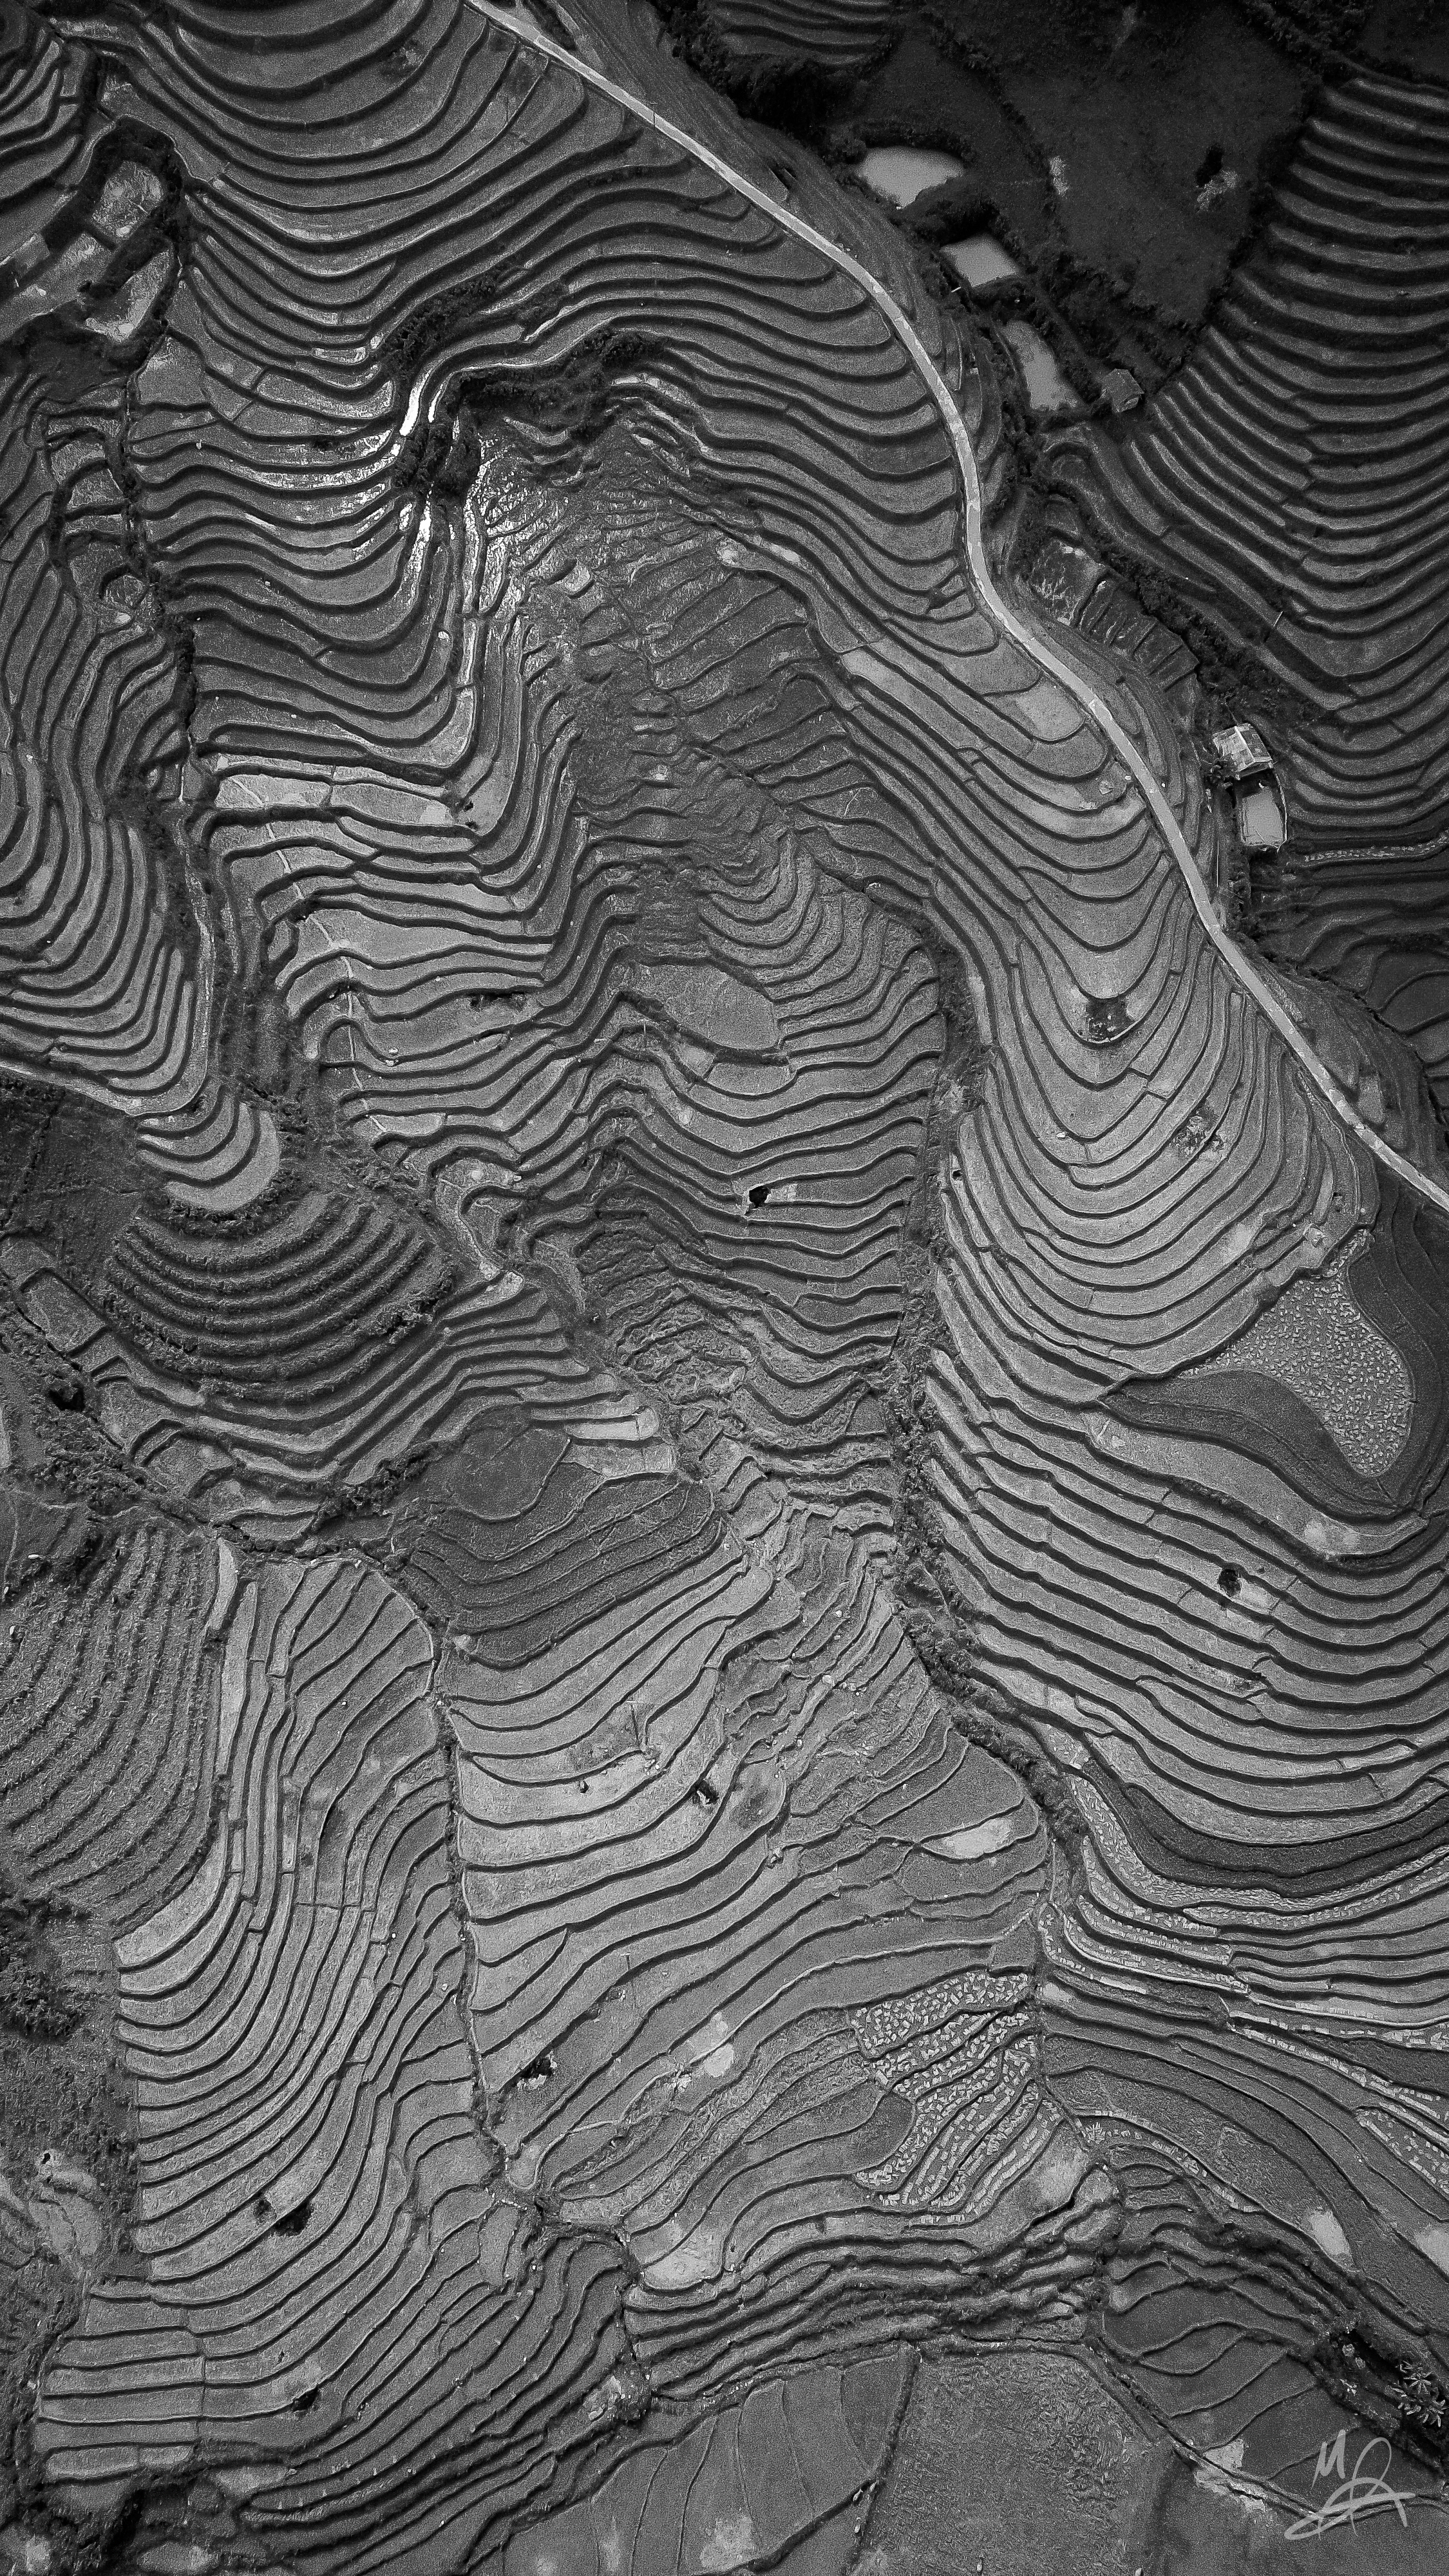 Wrinkles in the Land